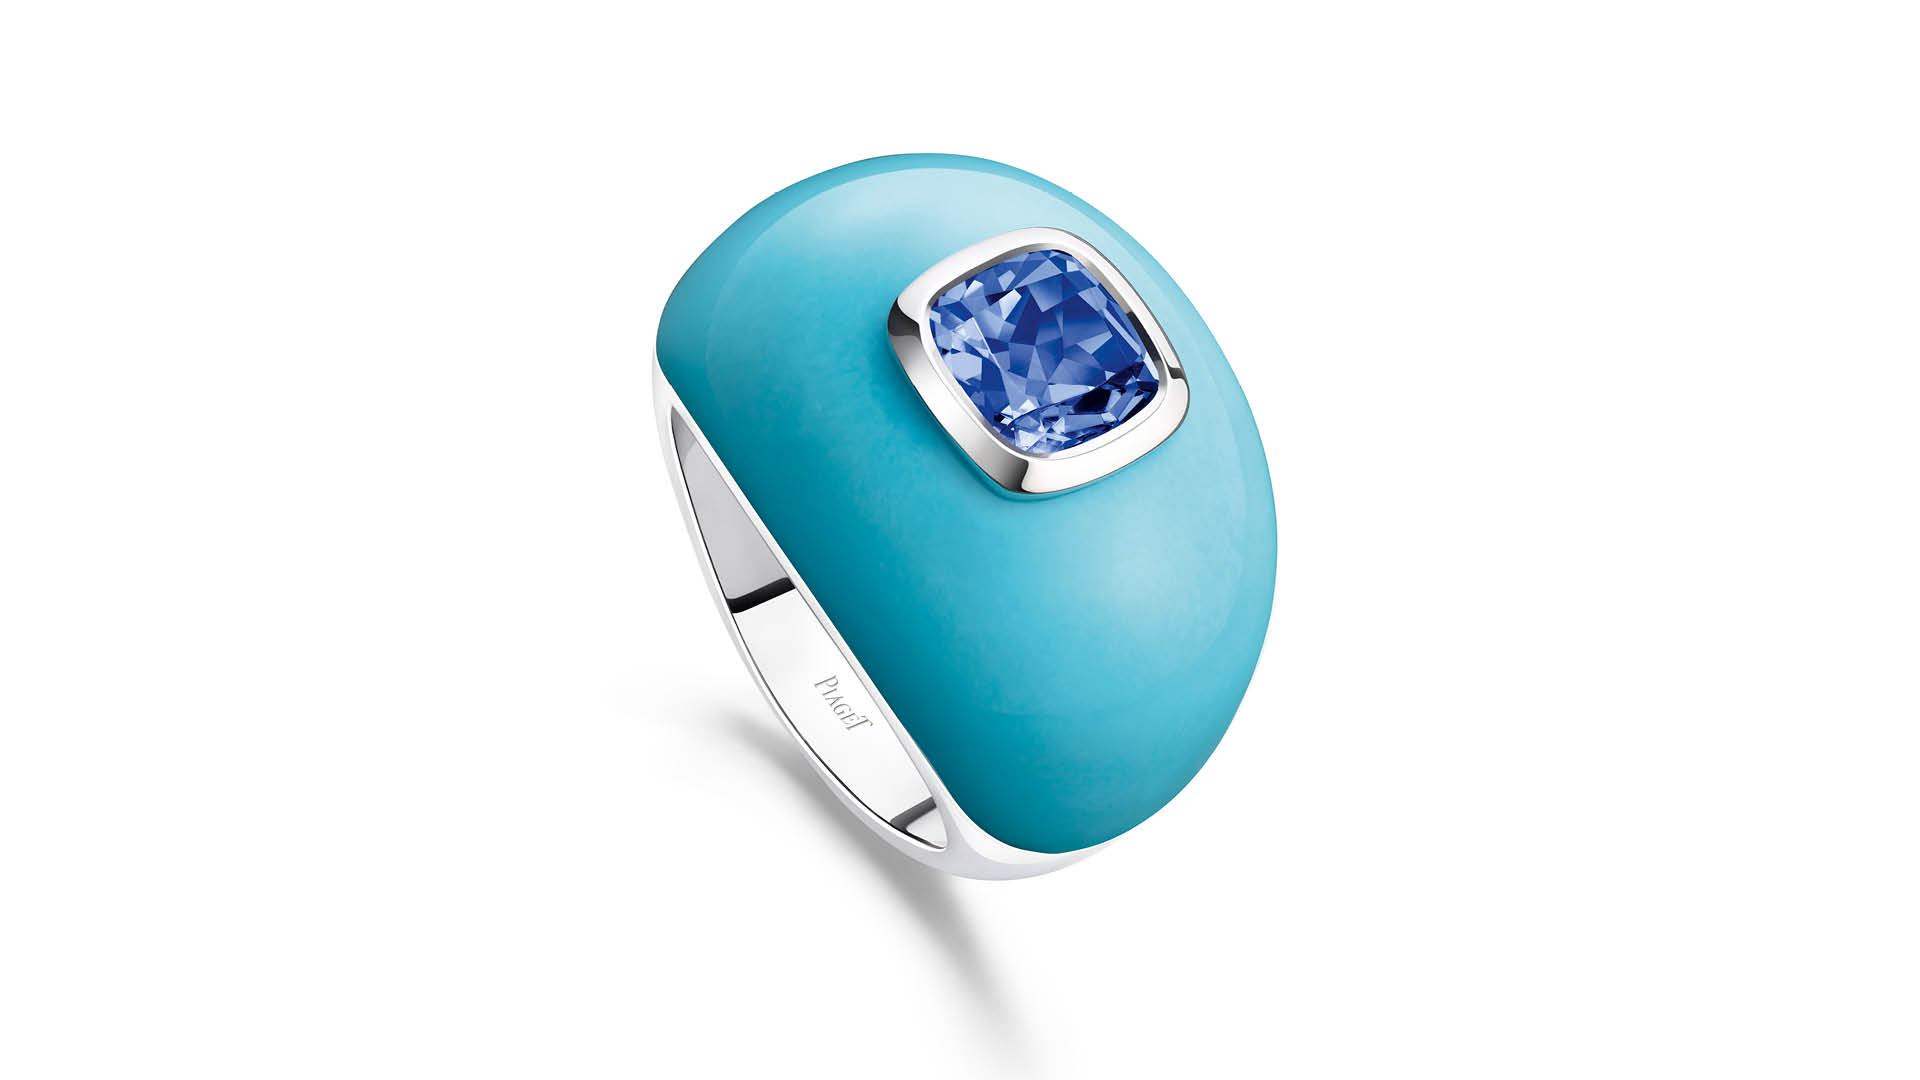 Piaget-Summer-Colours-Turquoise-Ring